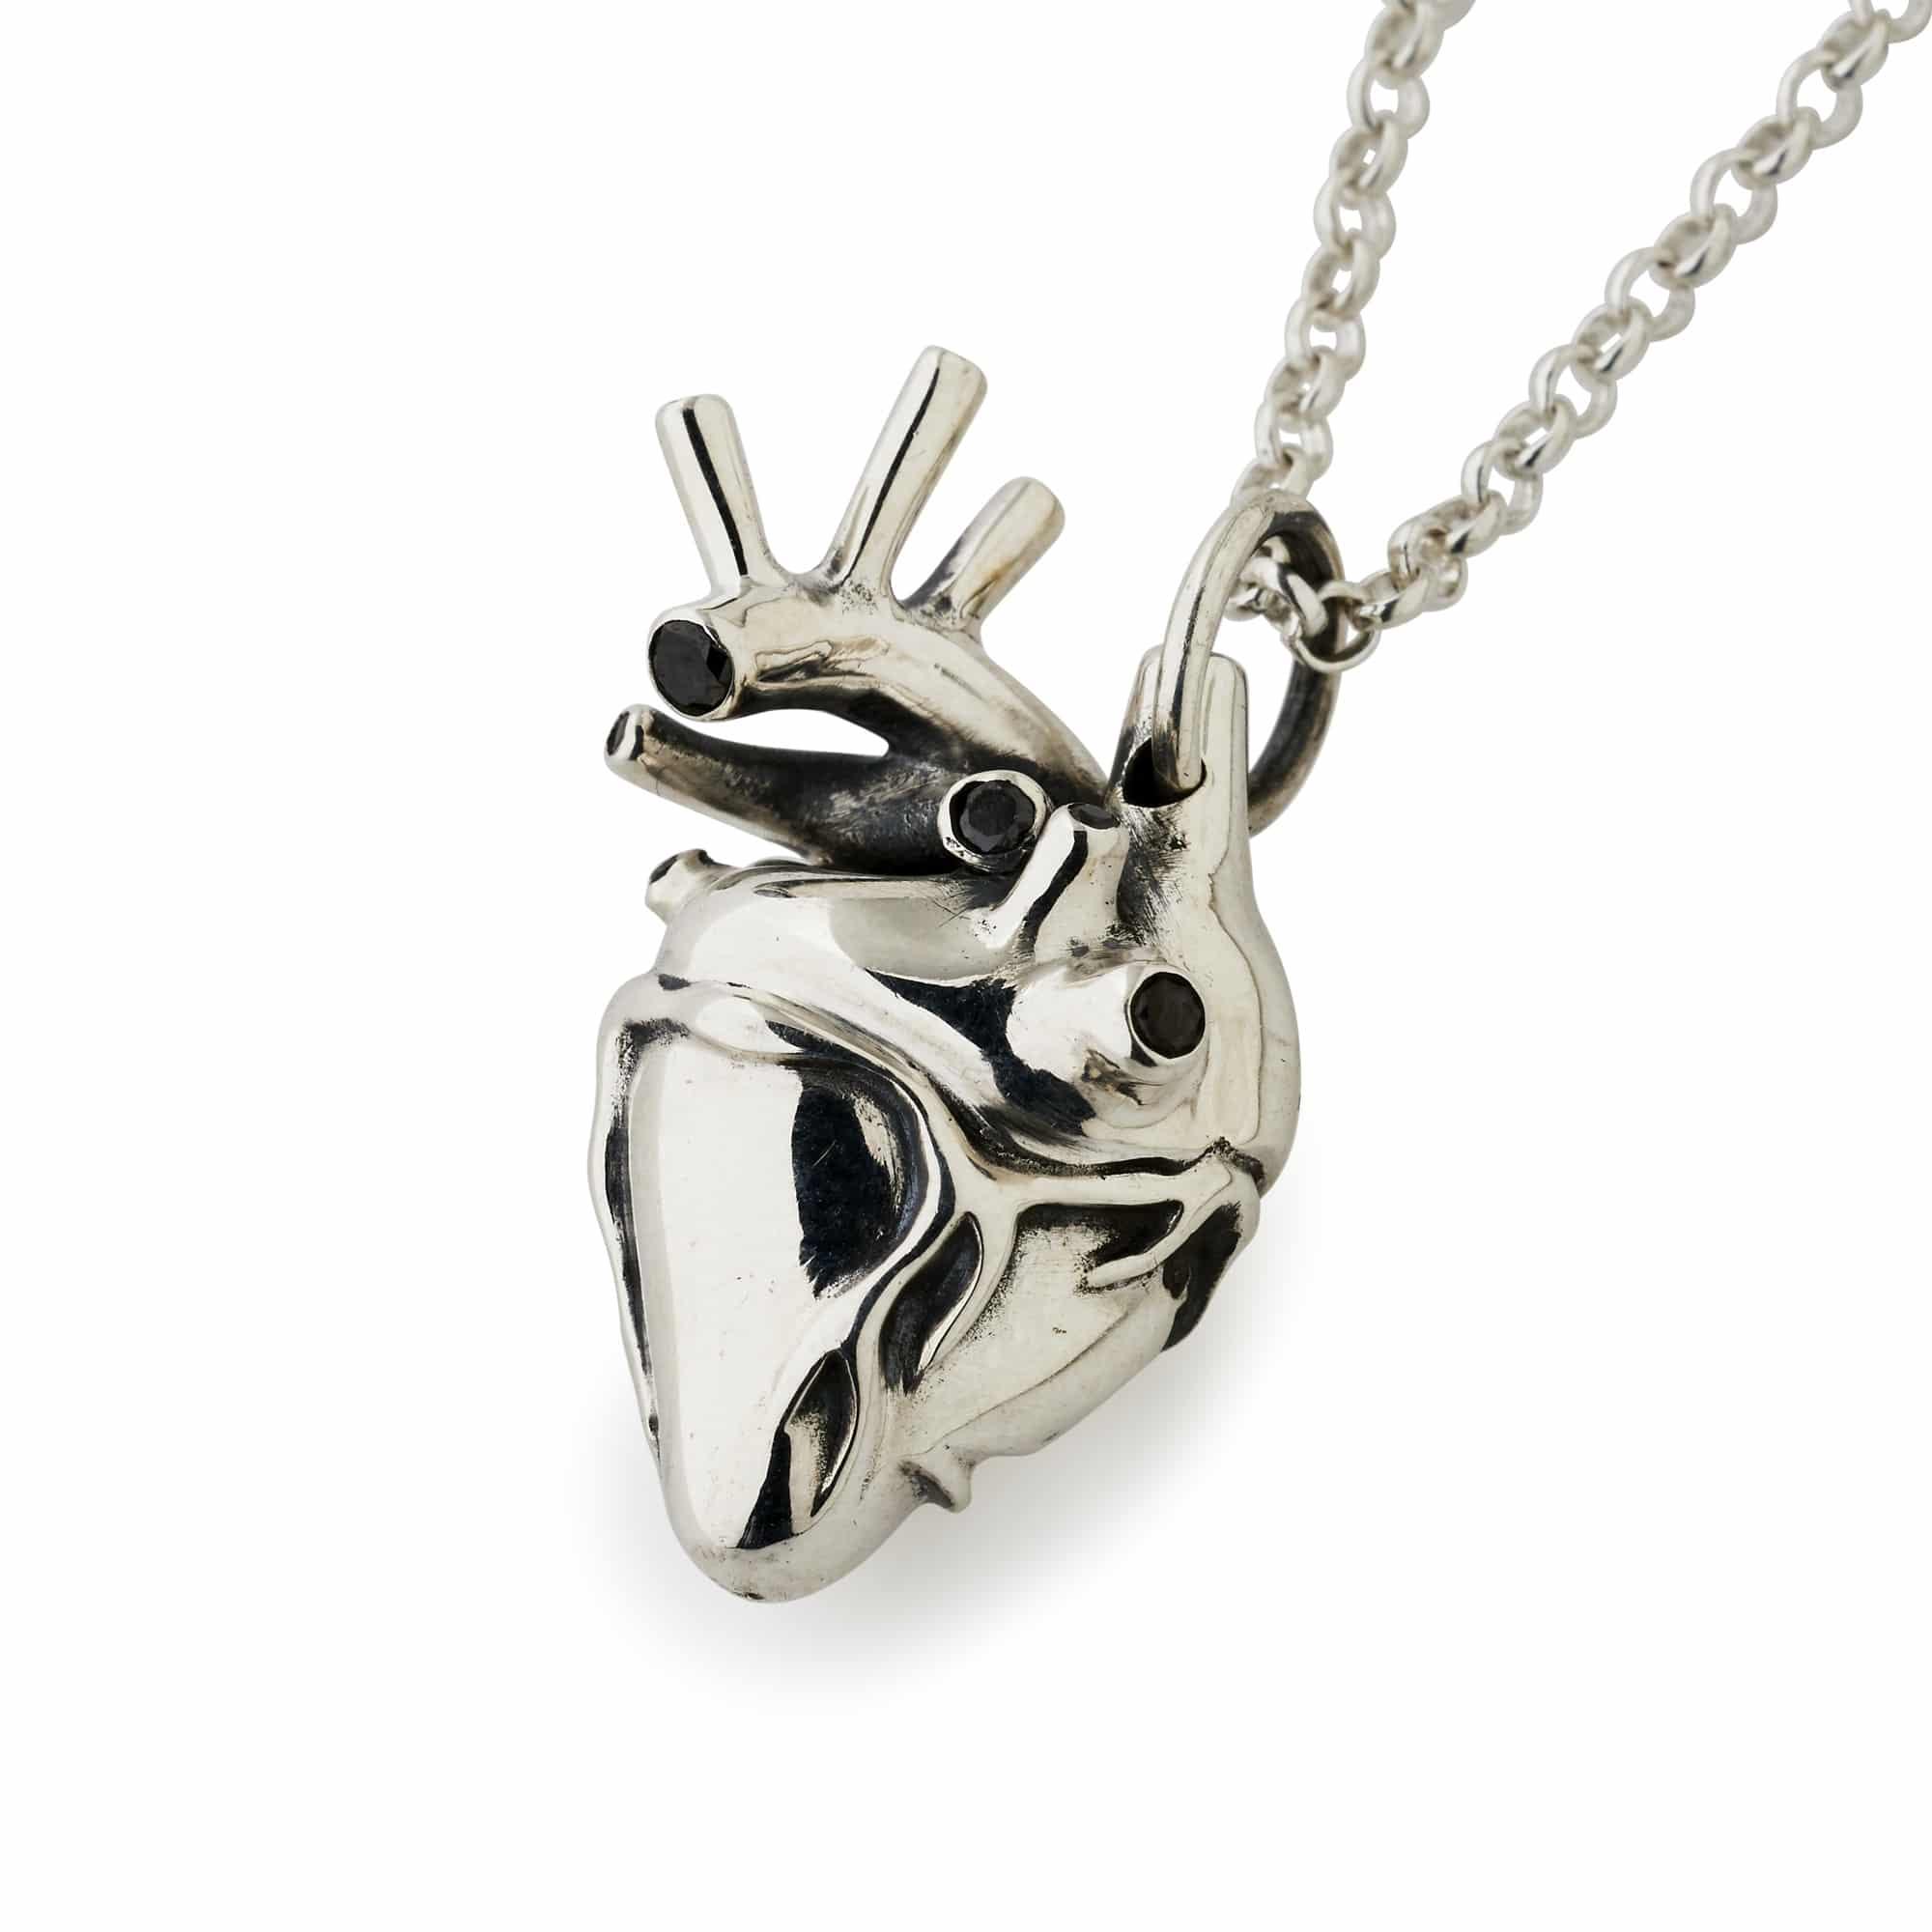 Small Silver Anatomical Heart Pendant – The Great Frog